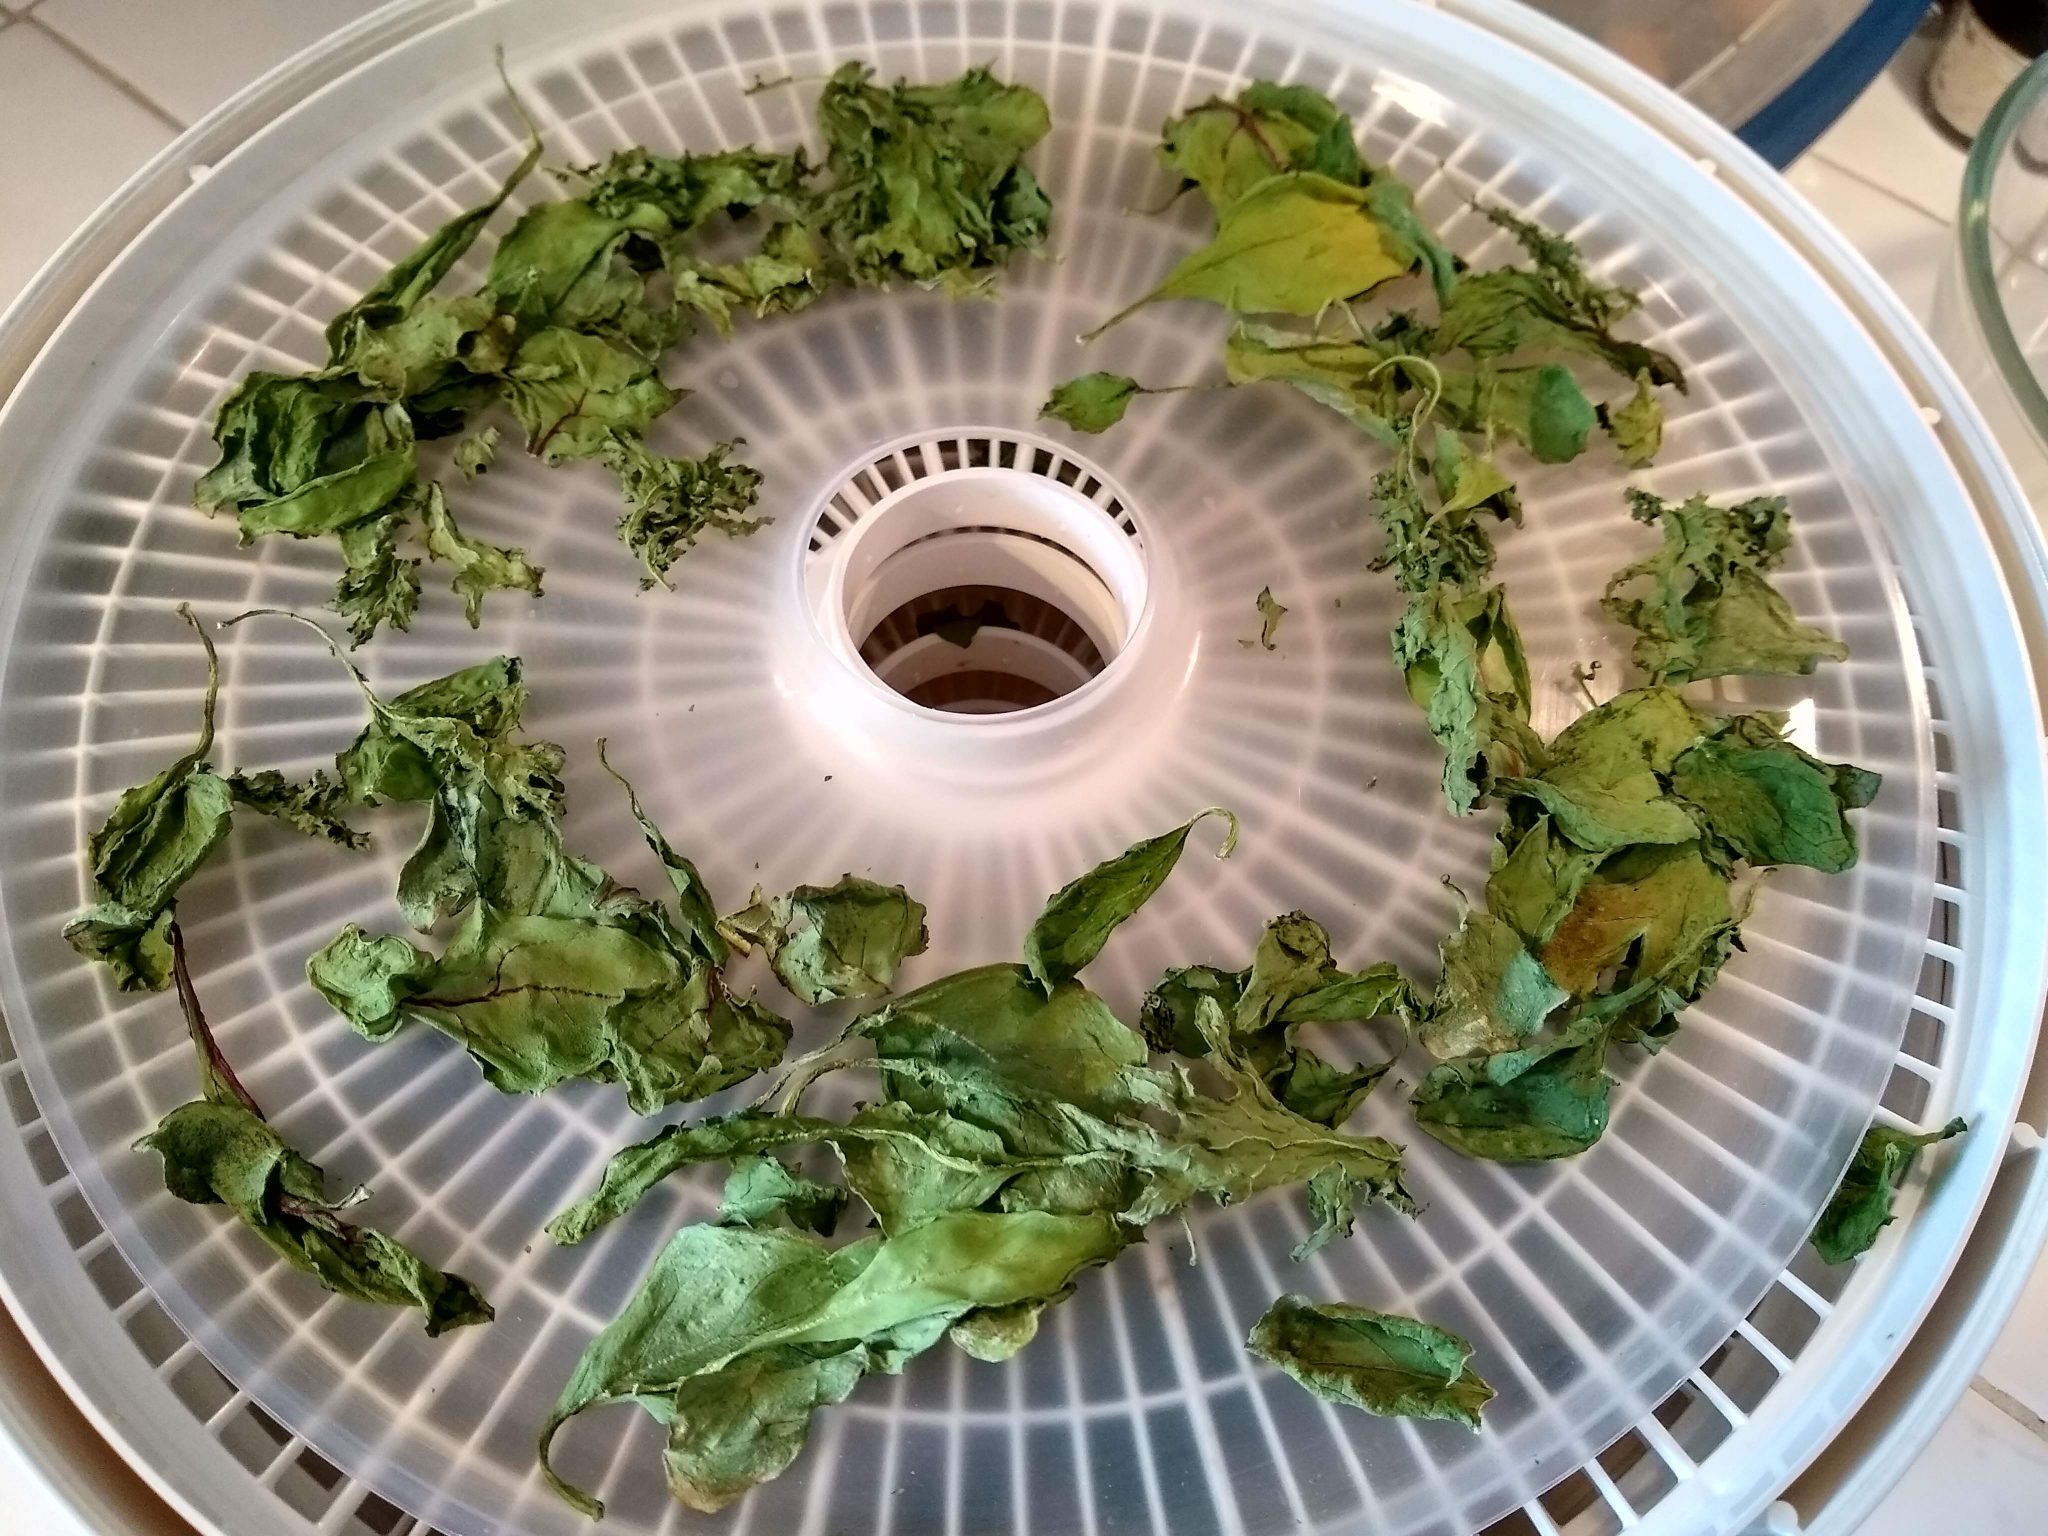 A dehydrator tray with dried spinach and kale